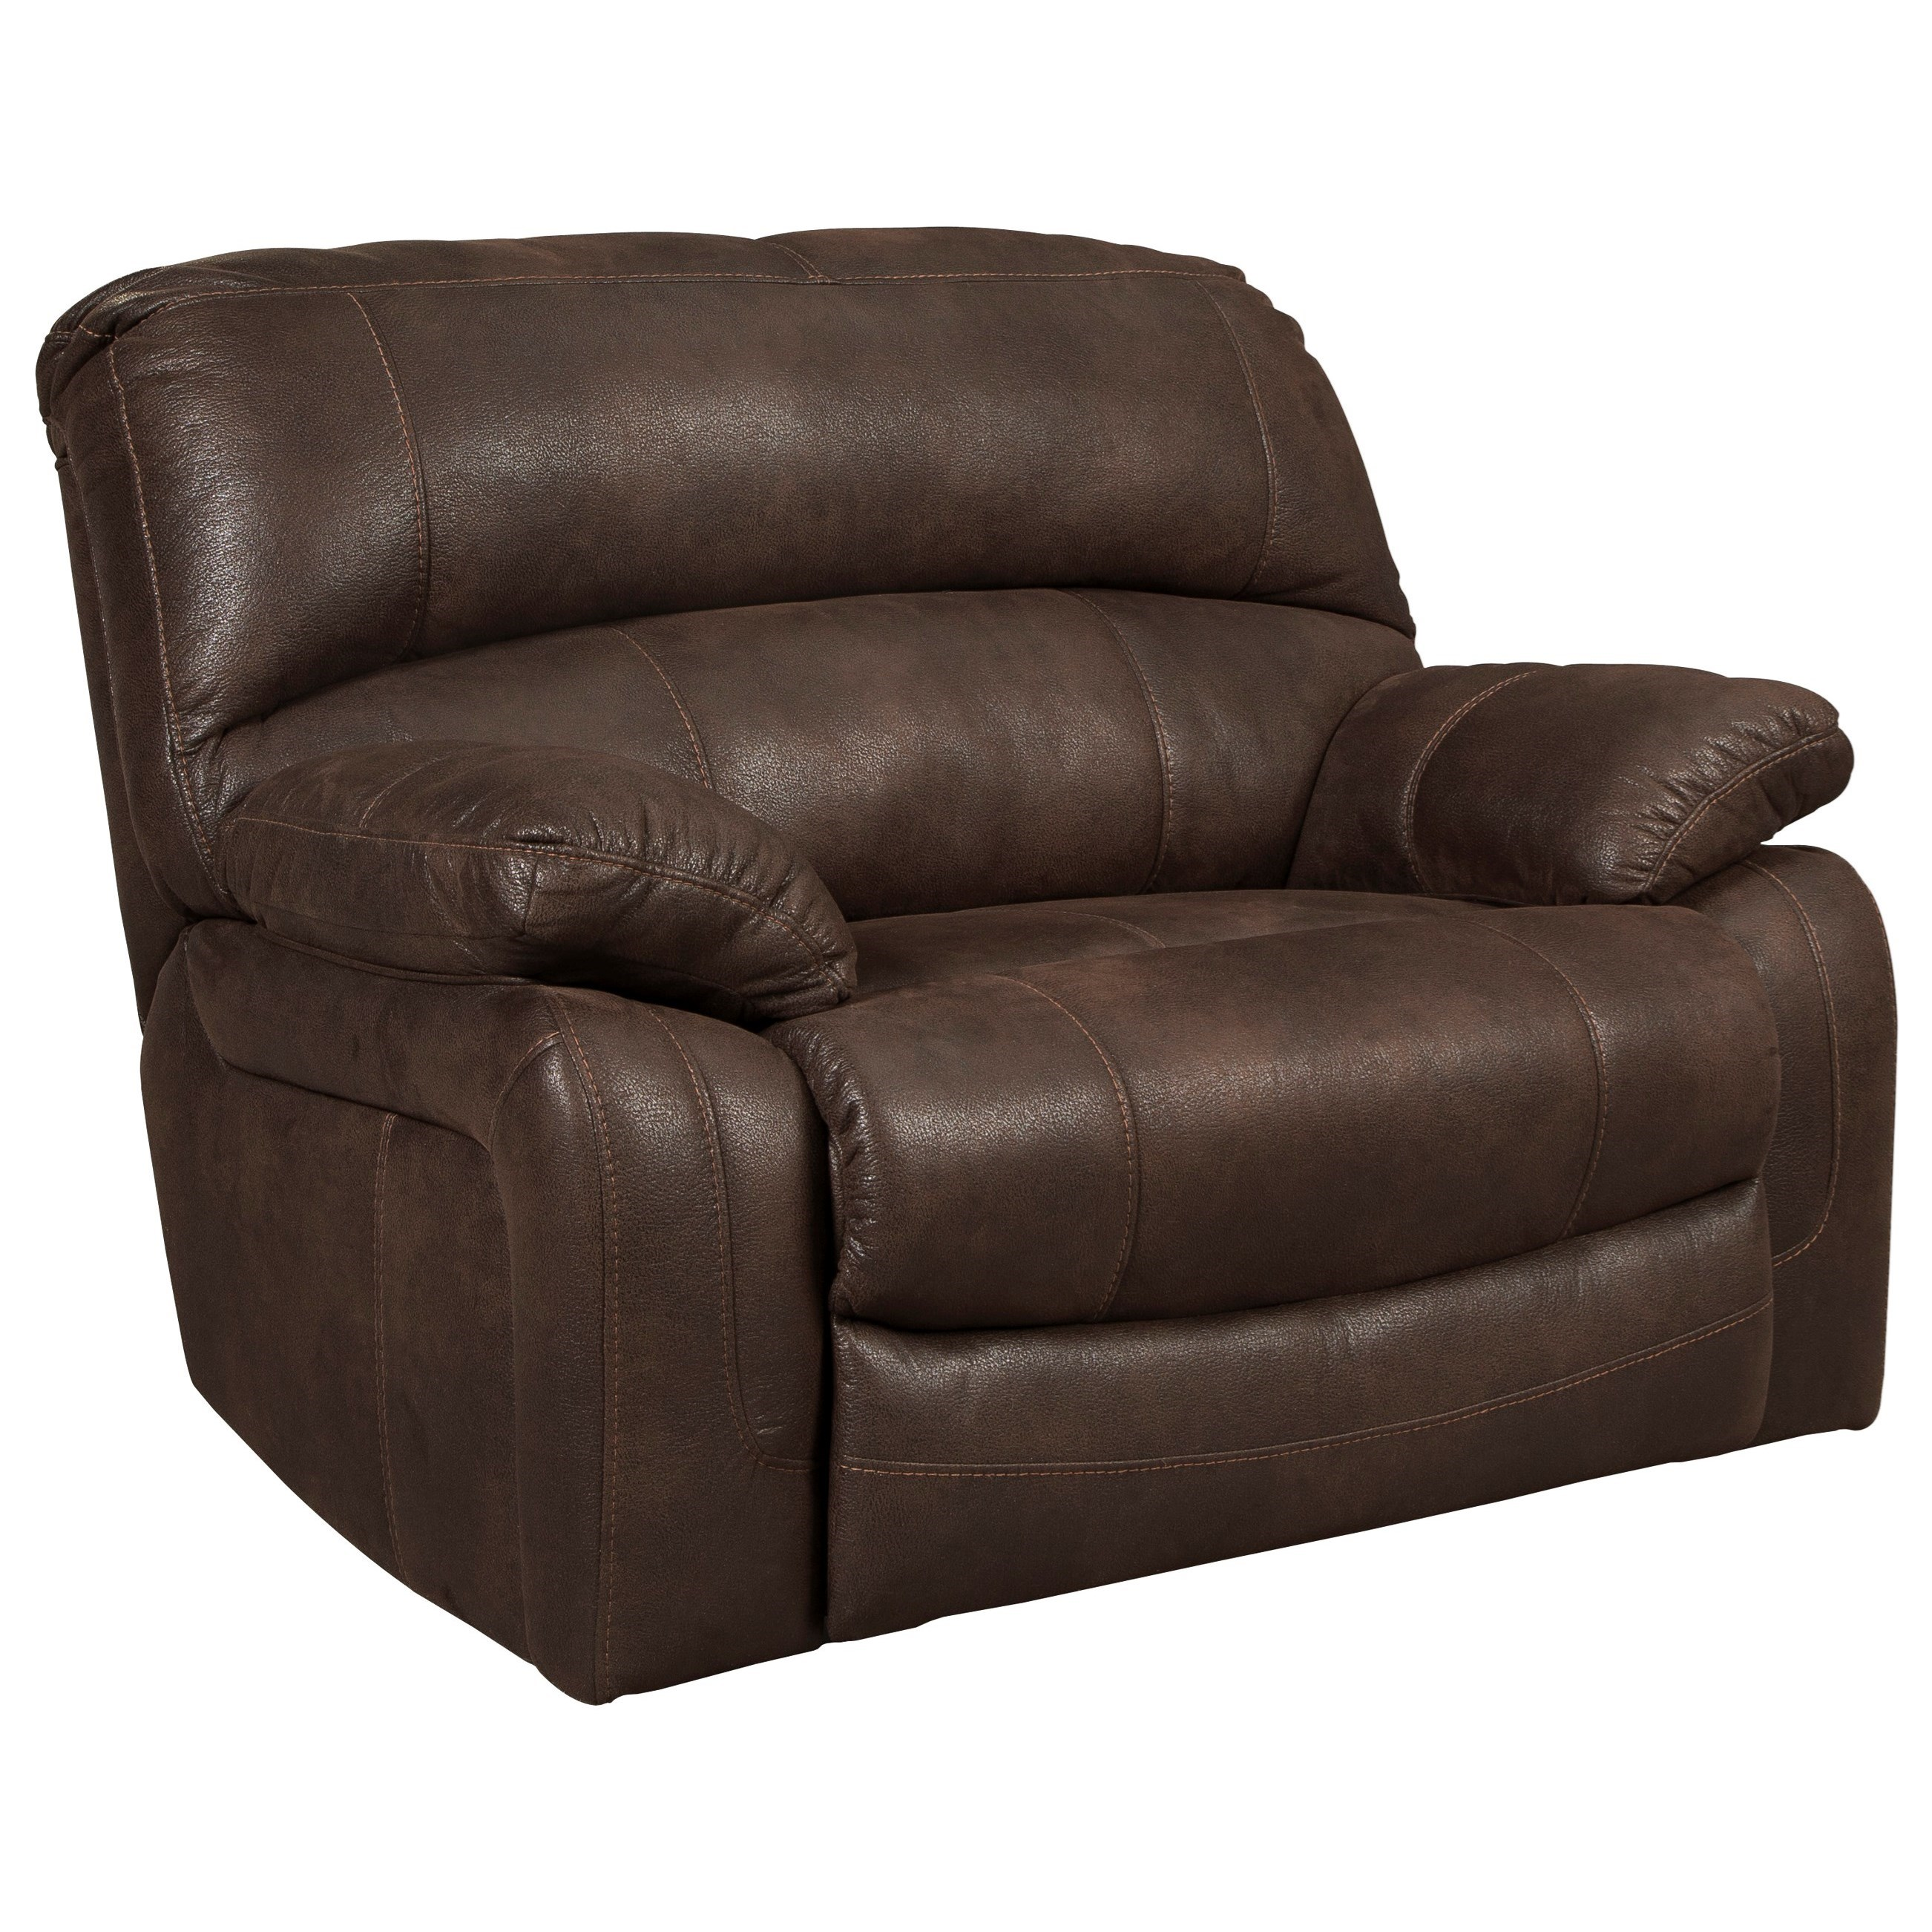 Signature Design By Ashley Zavier Wide Seat Power Recliner In Brown